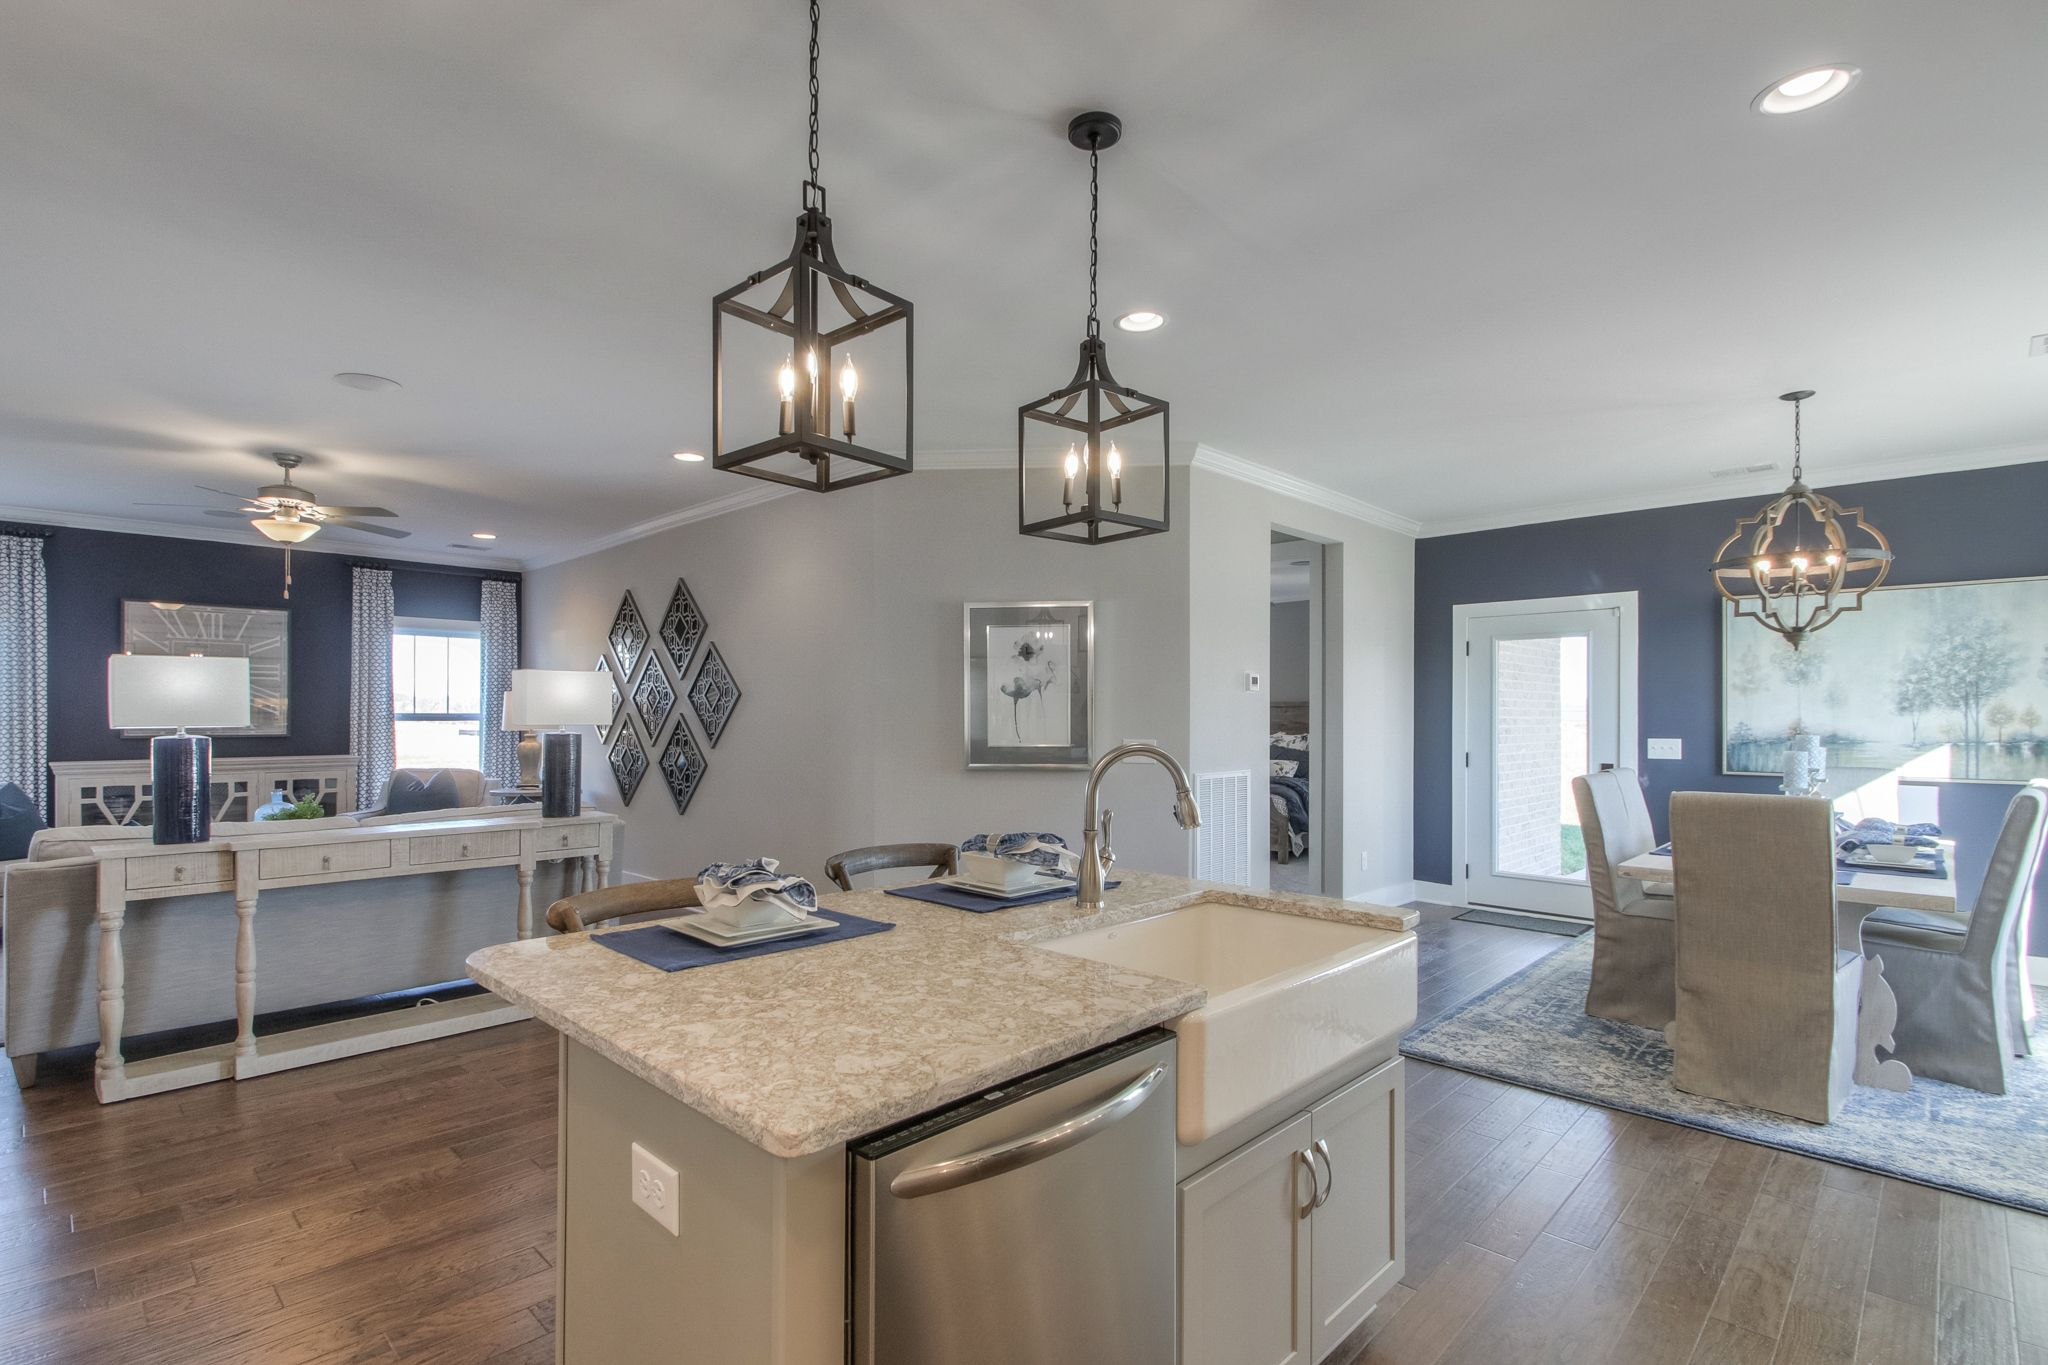 Living Area featured in The Kingsmont By Goodall Homes in Knoxville, TN